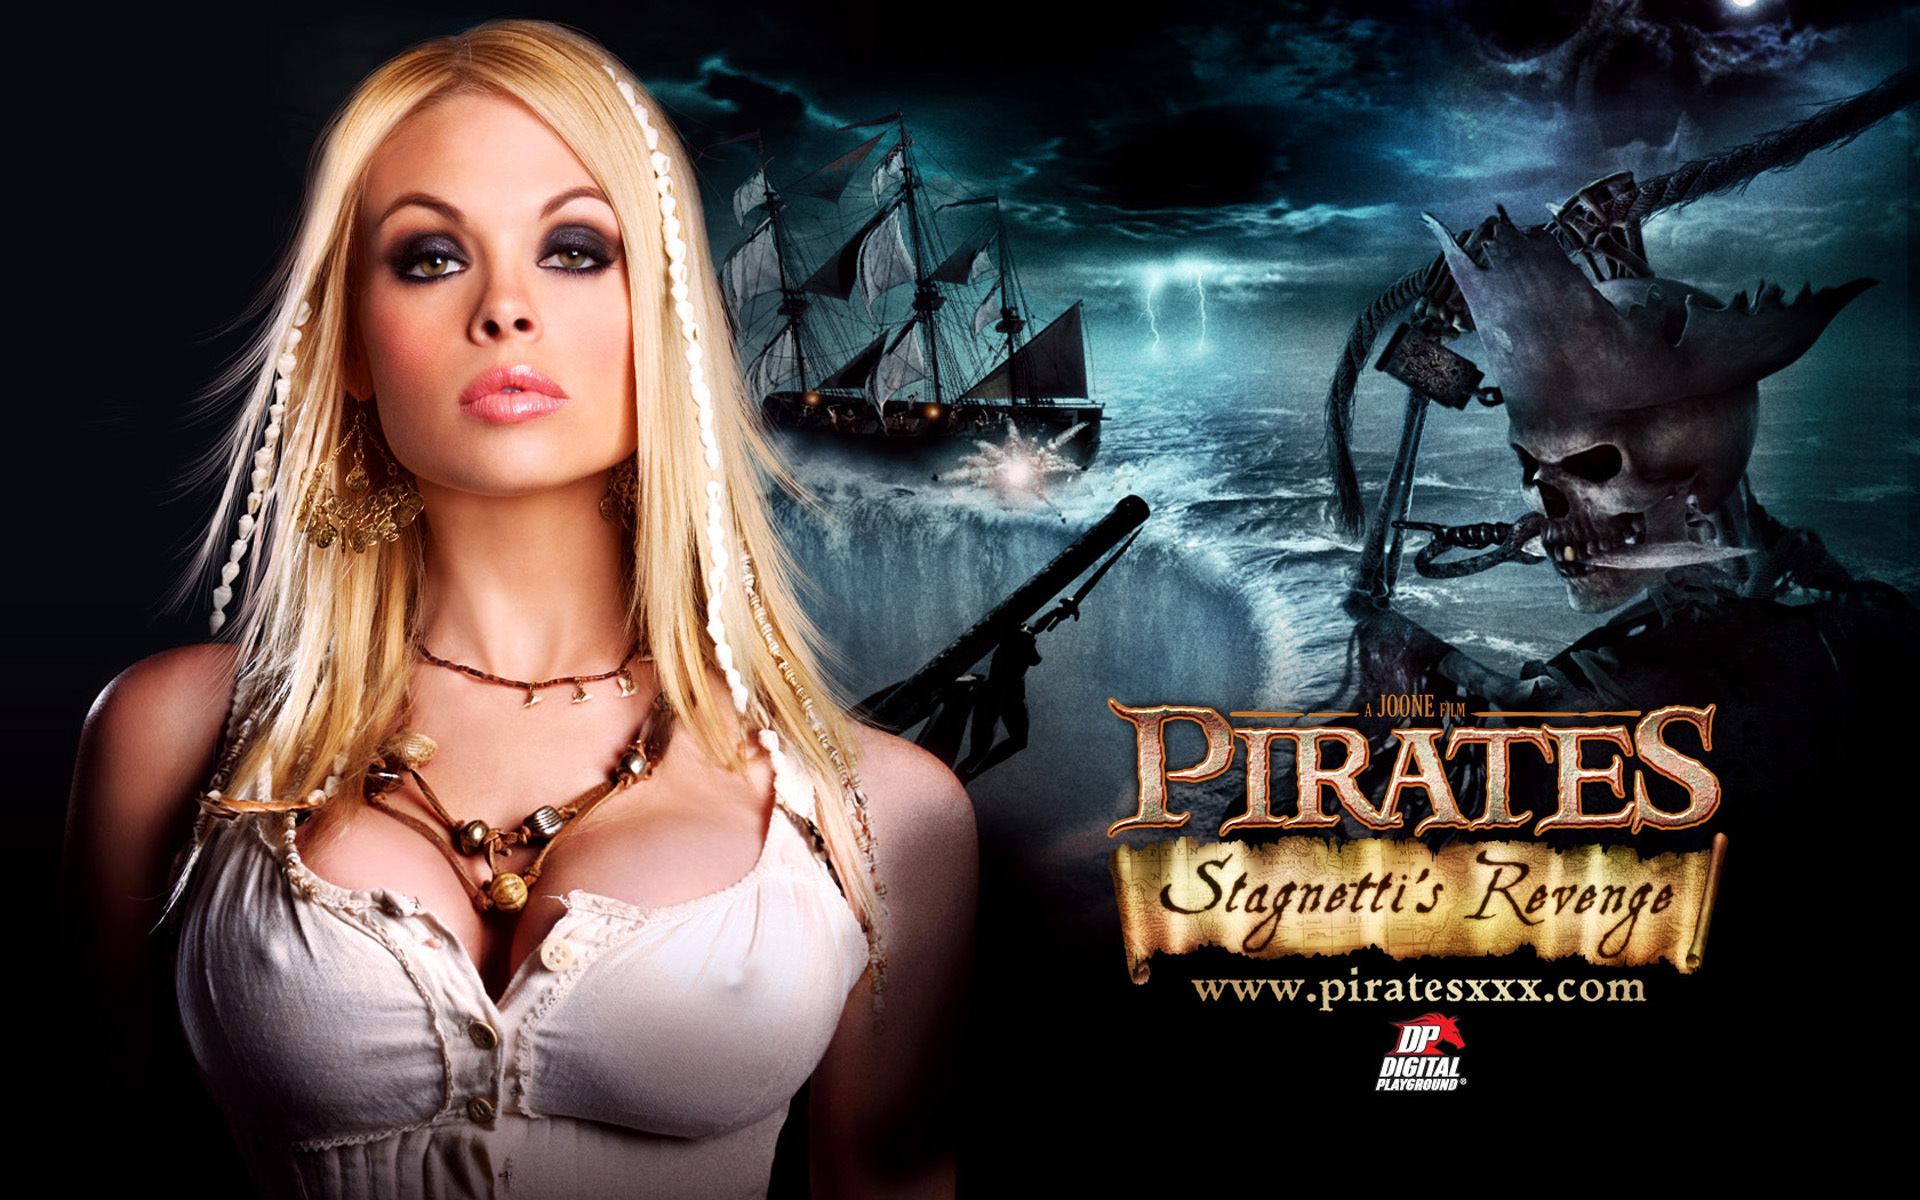 Xxx pirates movie xxx wallpaper fucked gallery